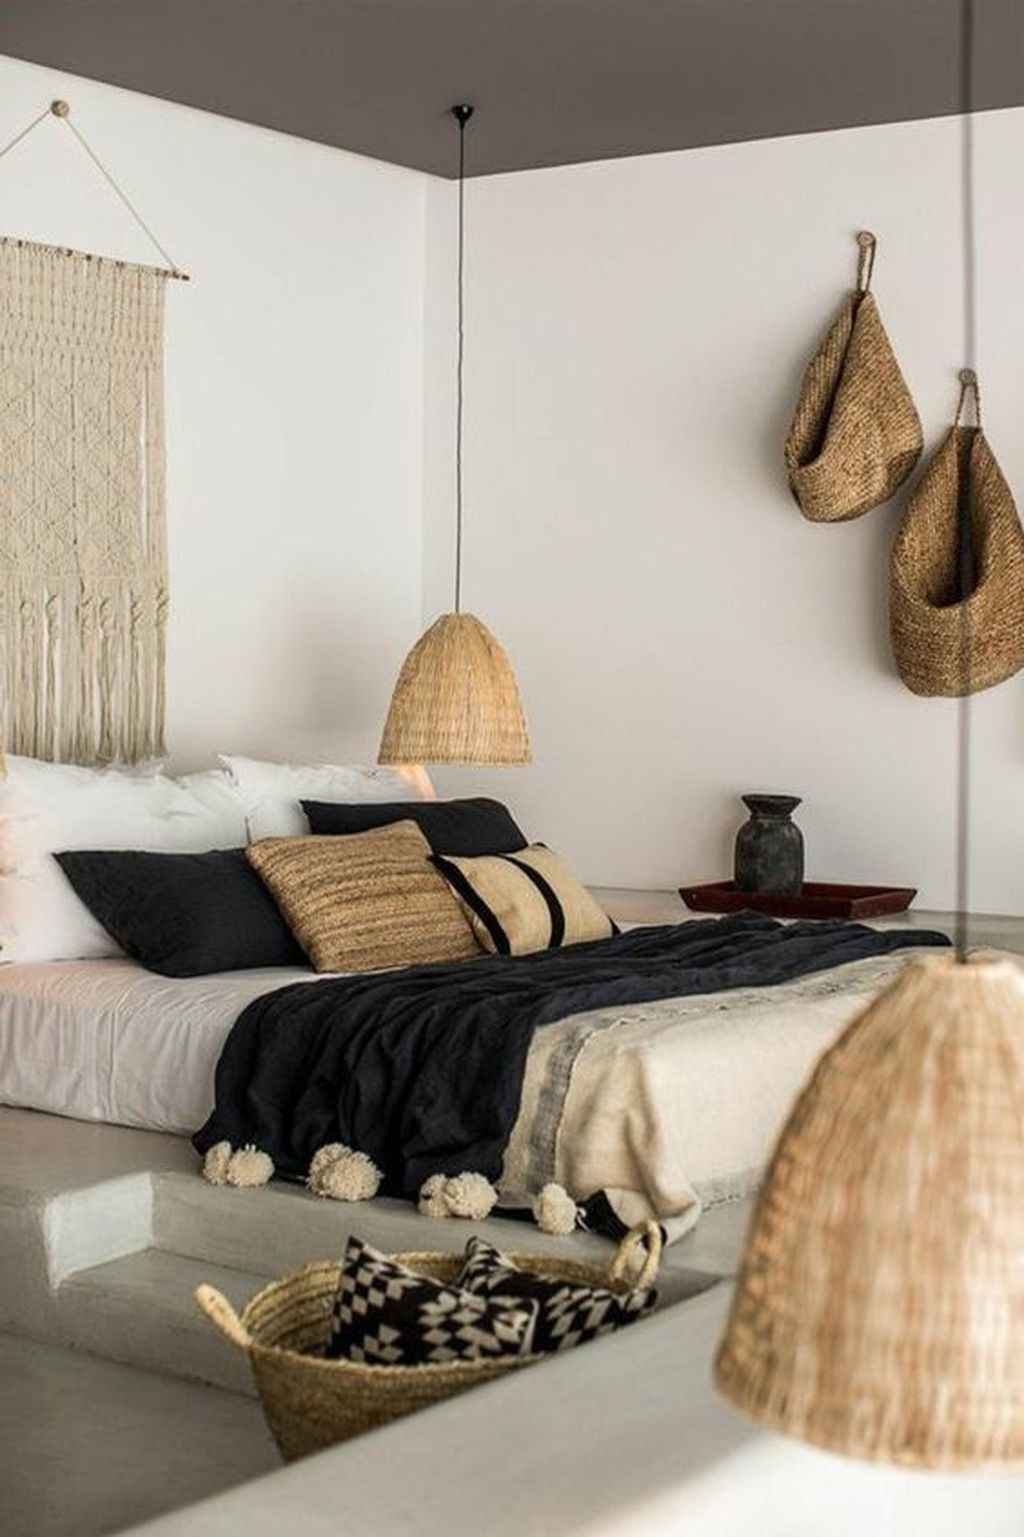 15 Low-Budget Bedroom Ideas For a Newly Wed in 2018 | Chic ... on Bohemian Bedroom Ideas On A Budget  id=31705